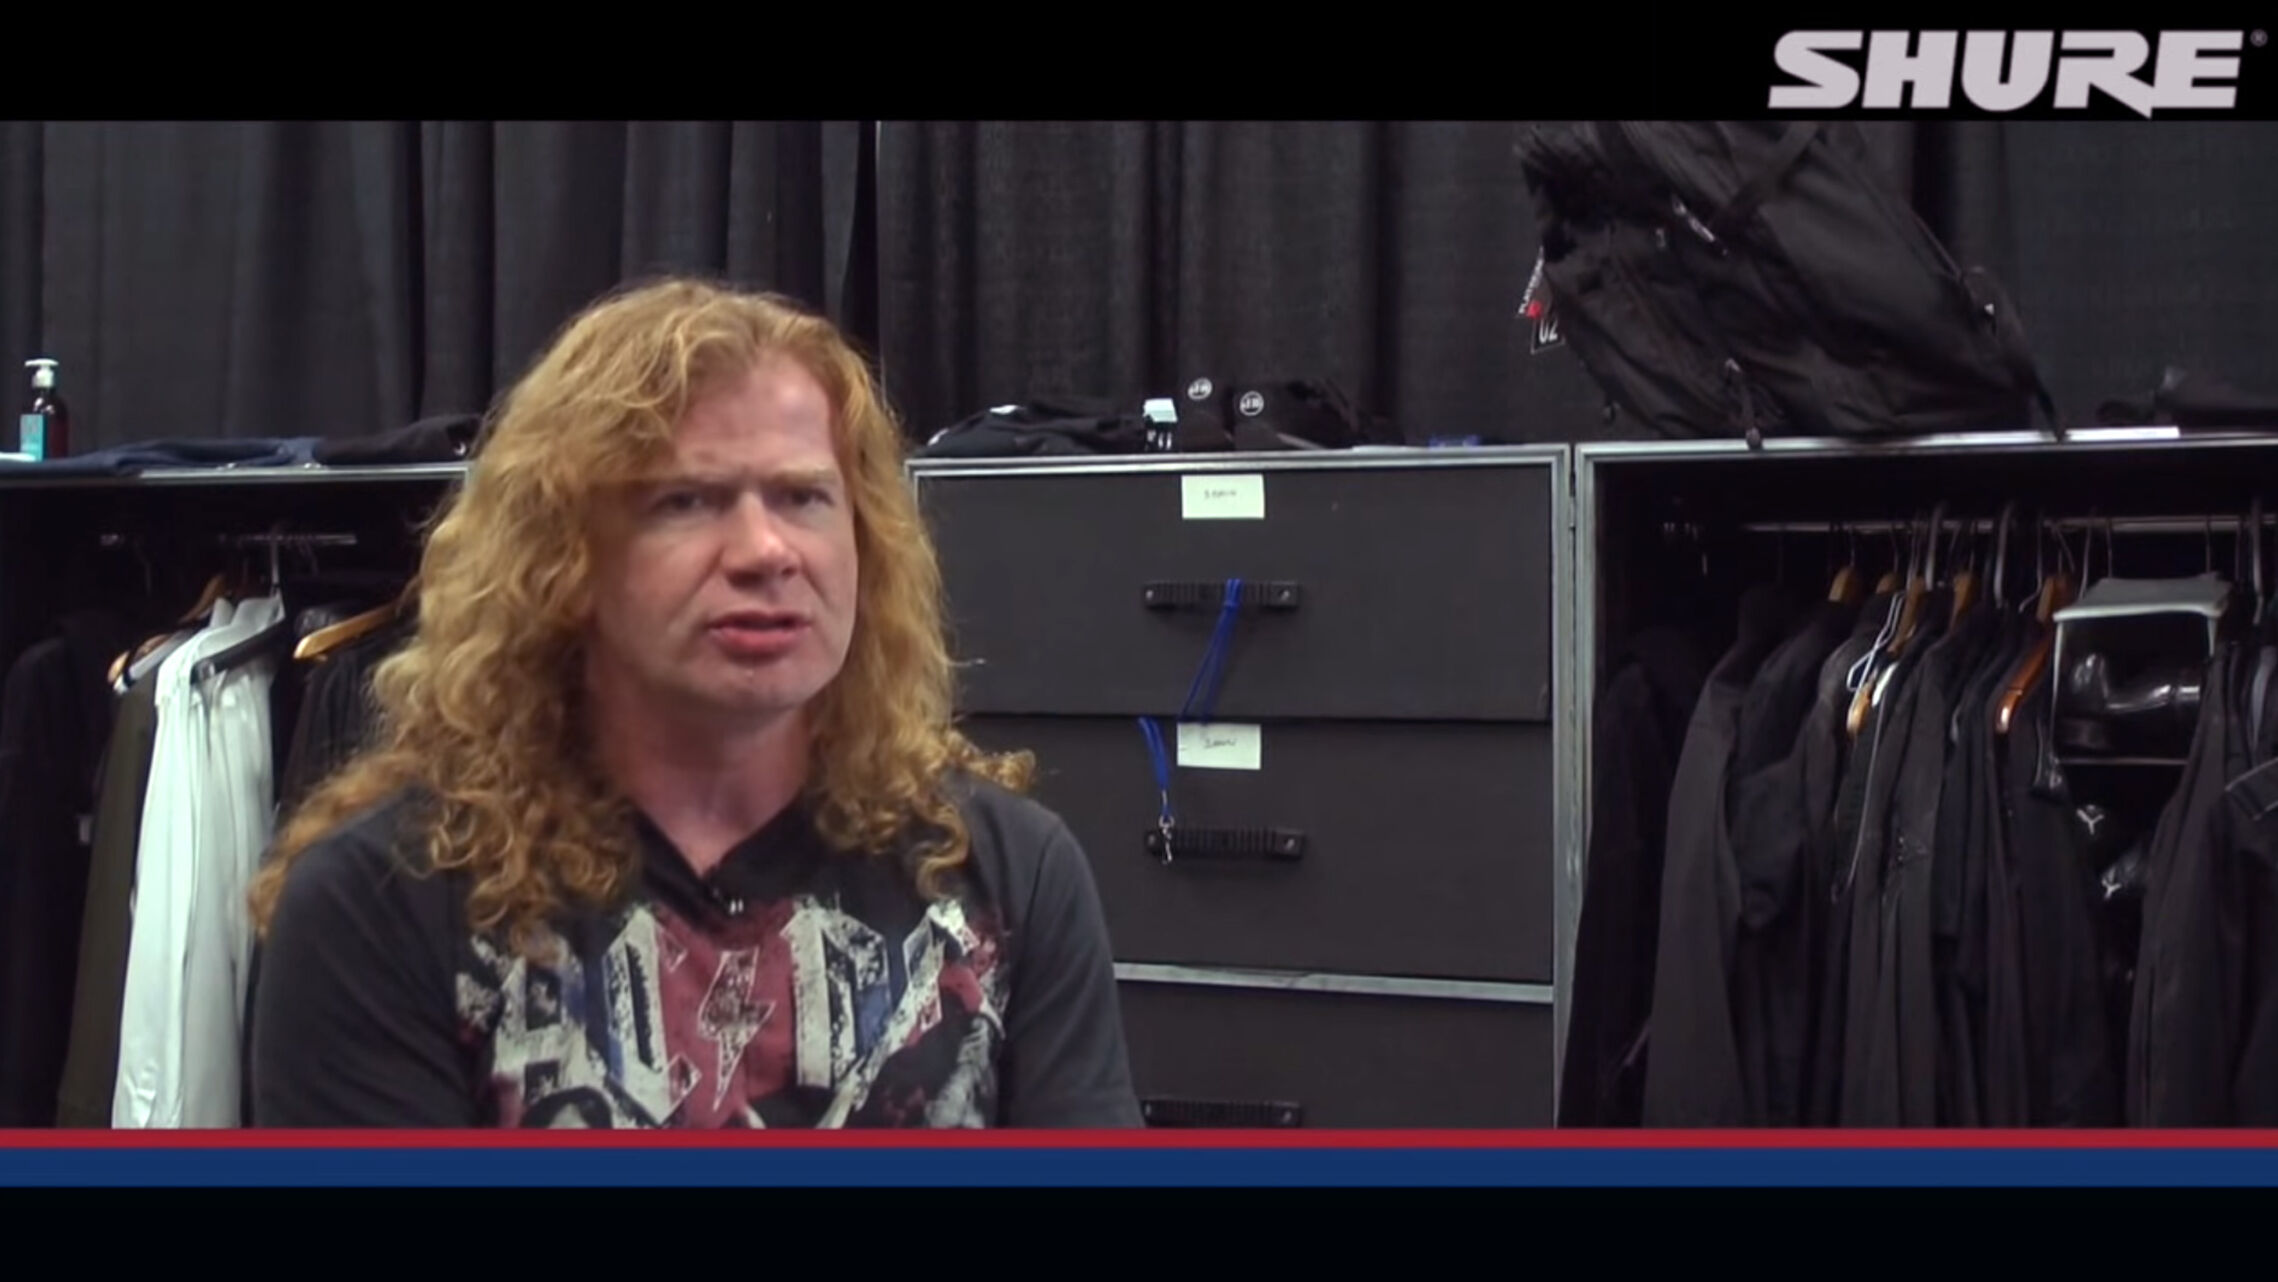 Dave Mustaine - The Shure Interview